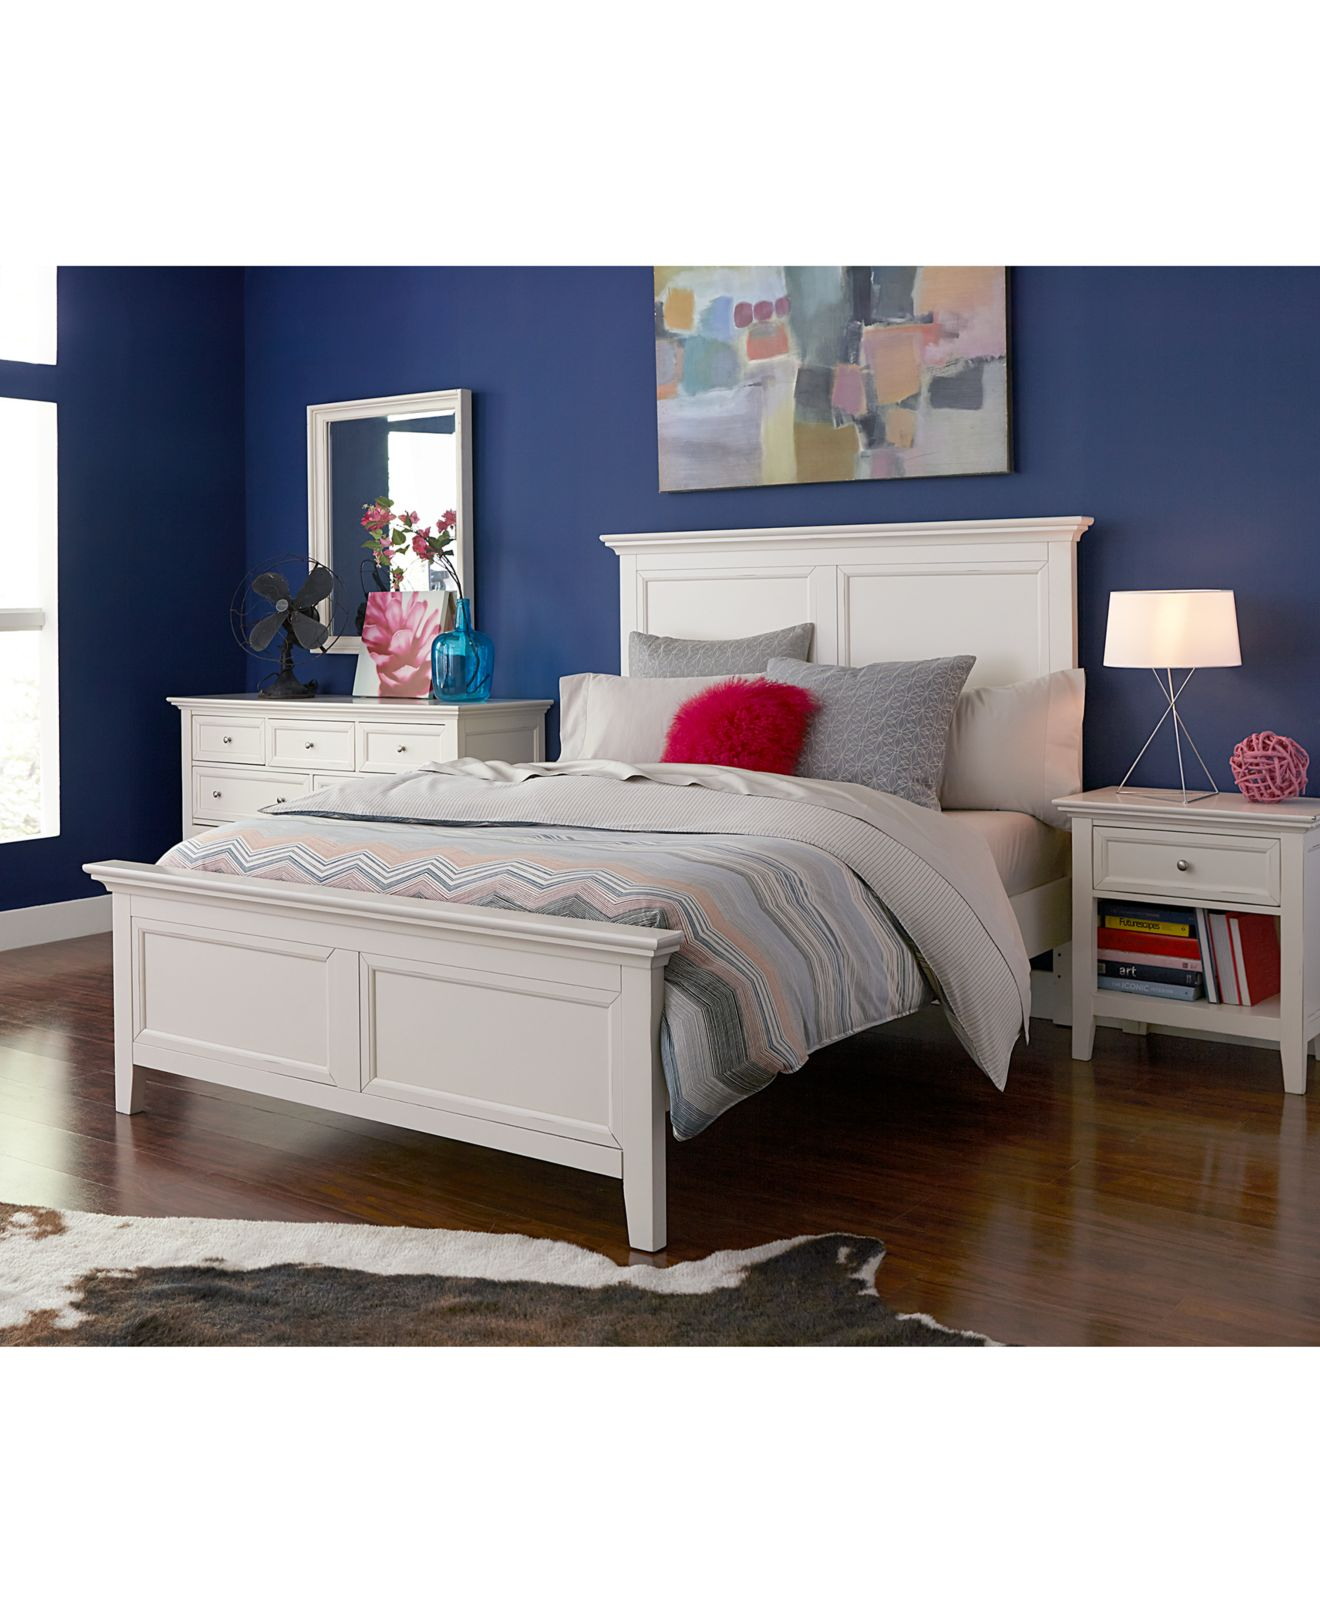 stylecraft bedroom furniture - shop for and buy stylecraft bedroom